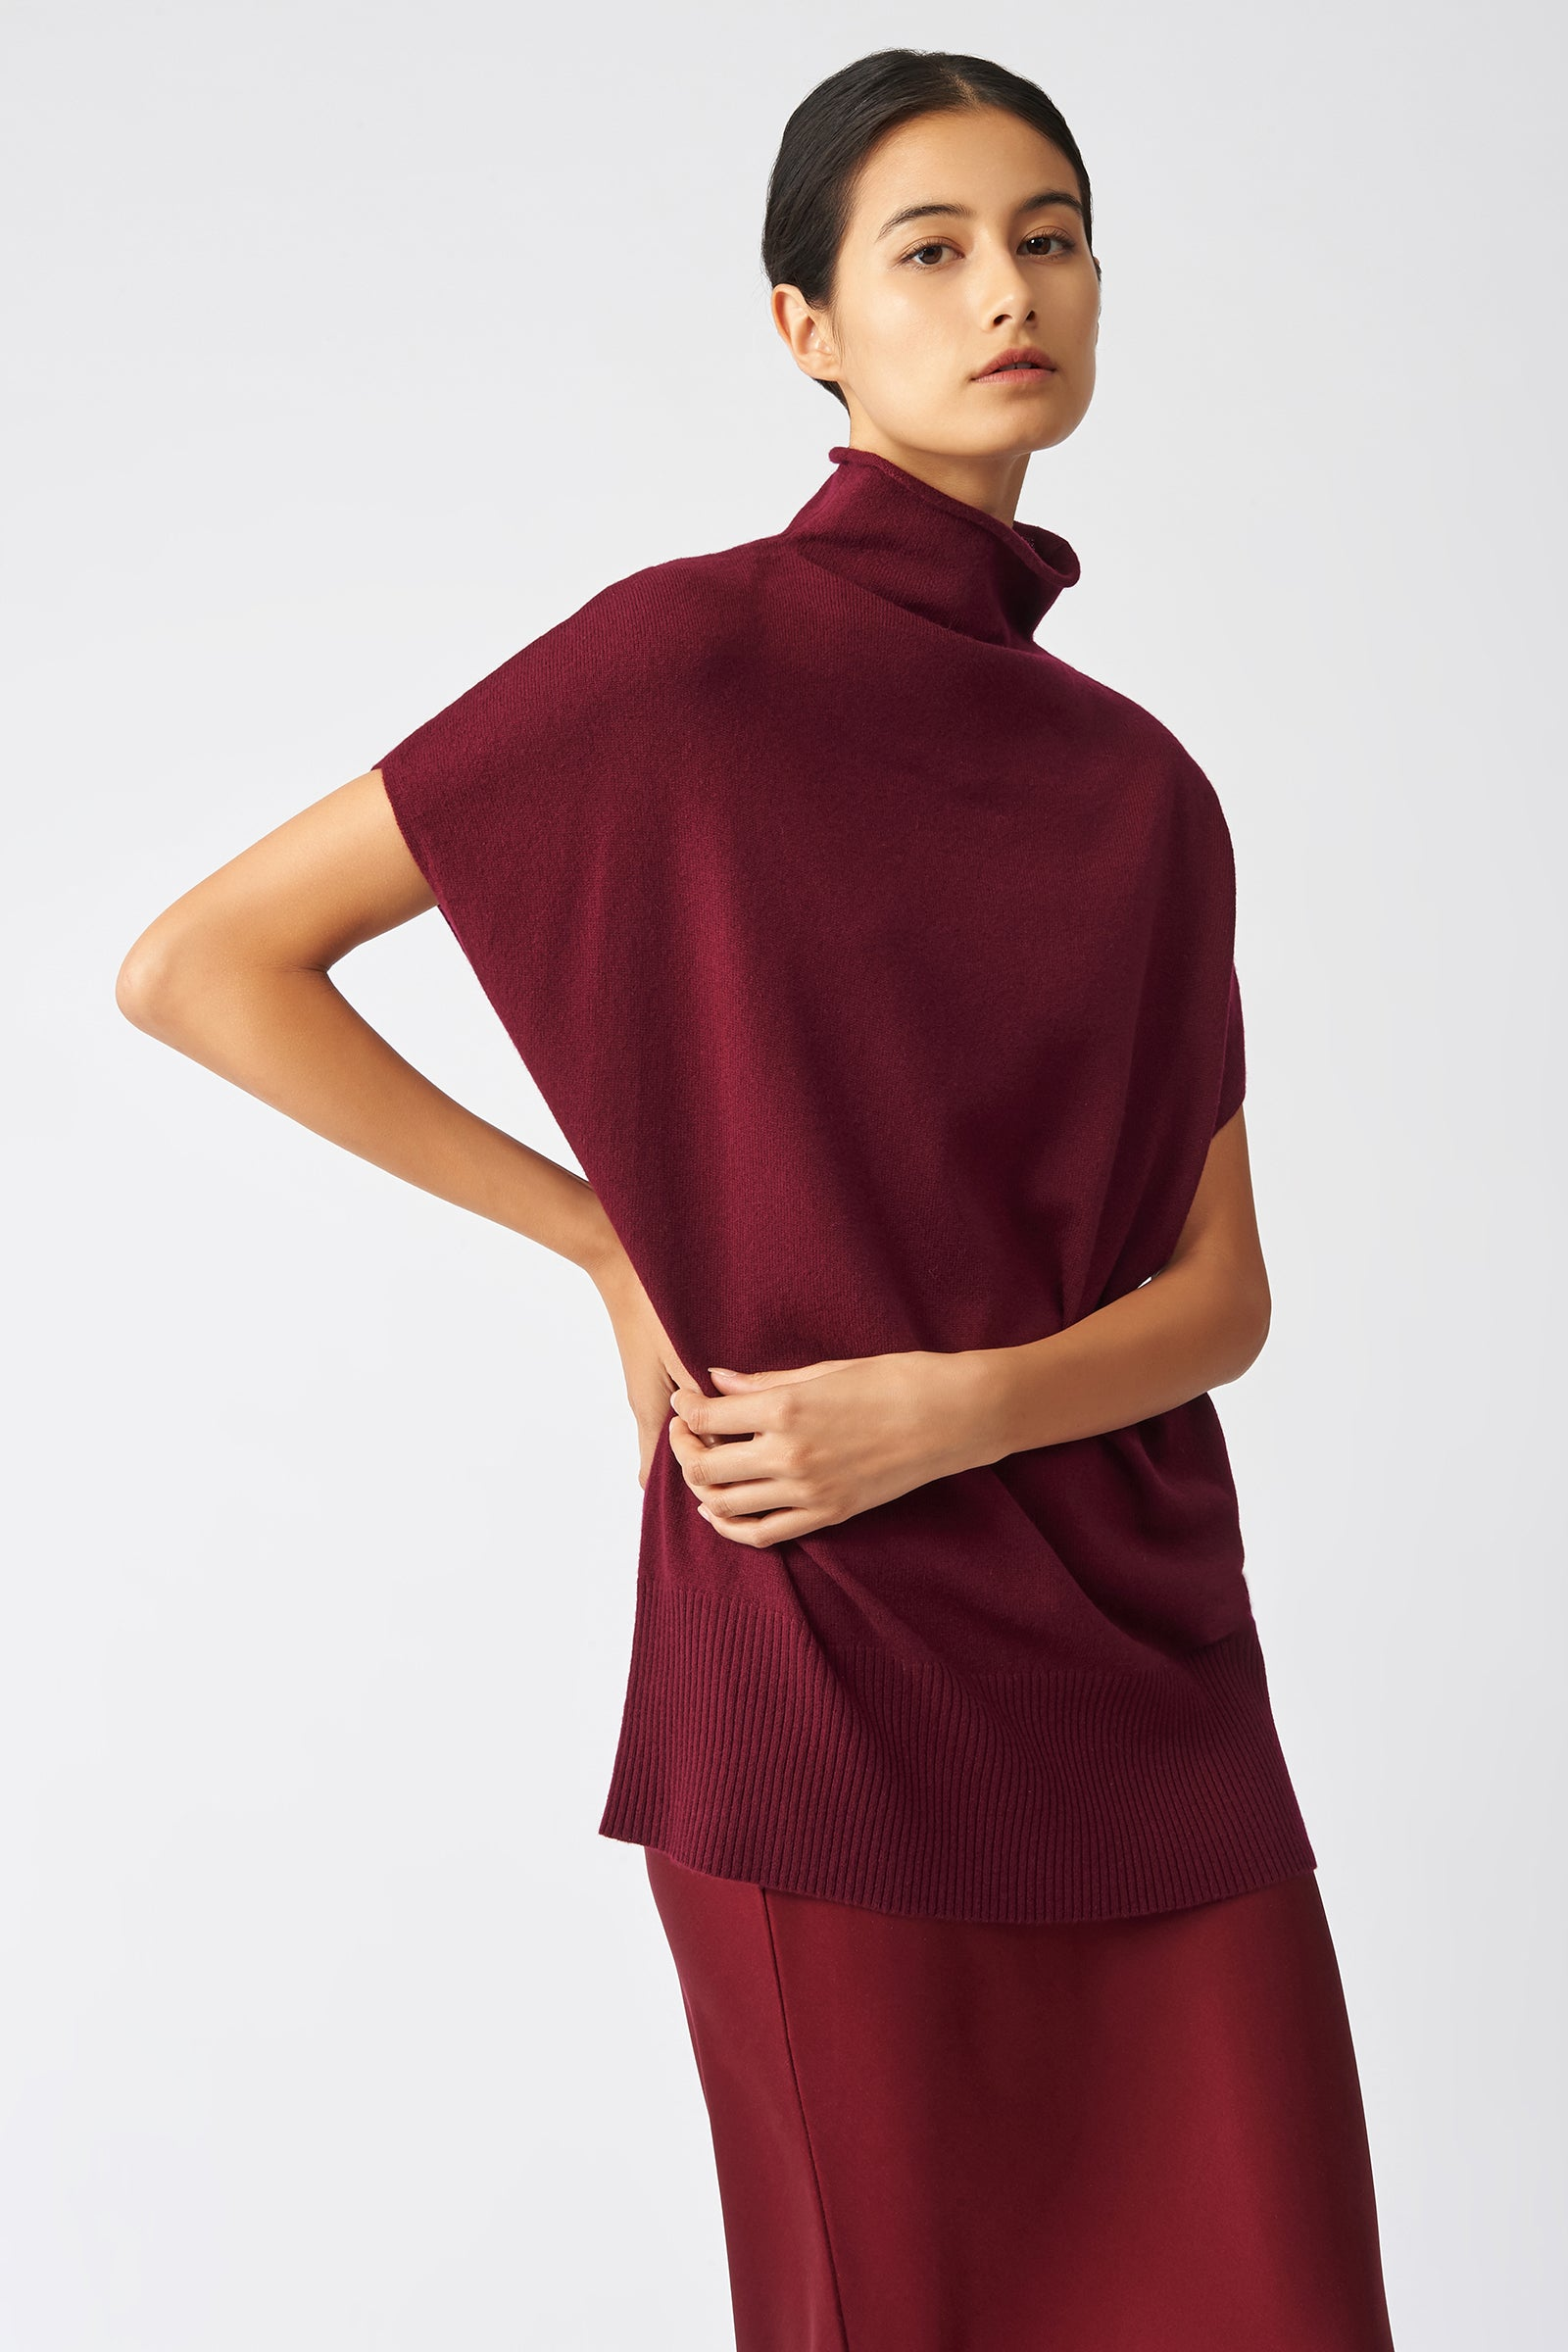 Kal Rieman Cashmere Funnelneck in Bordeaux on Model Front Side View